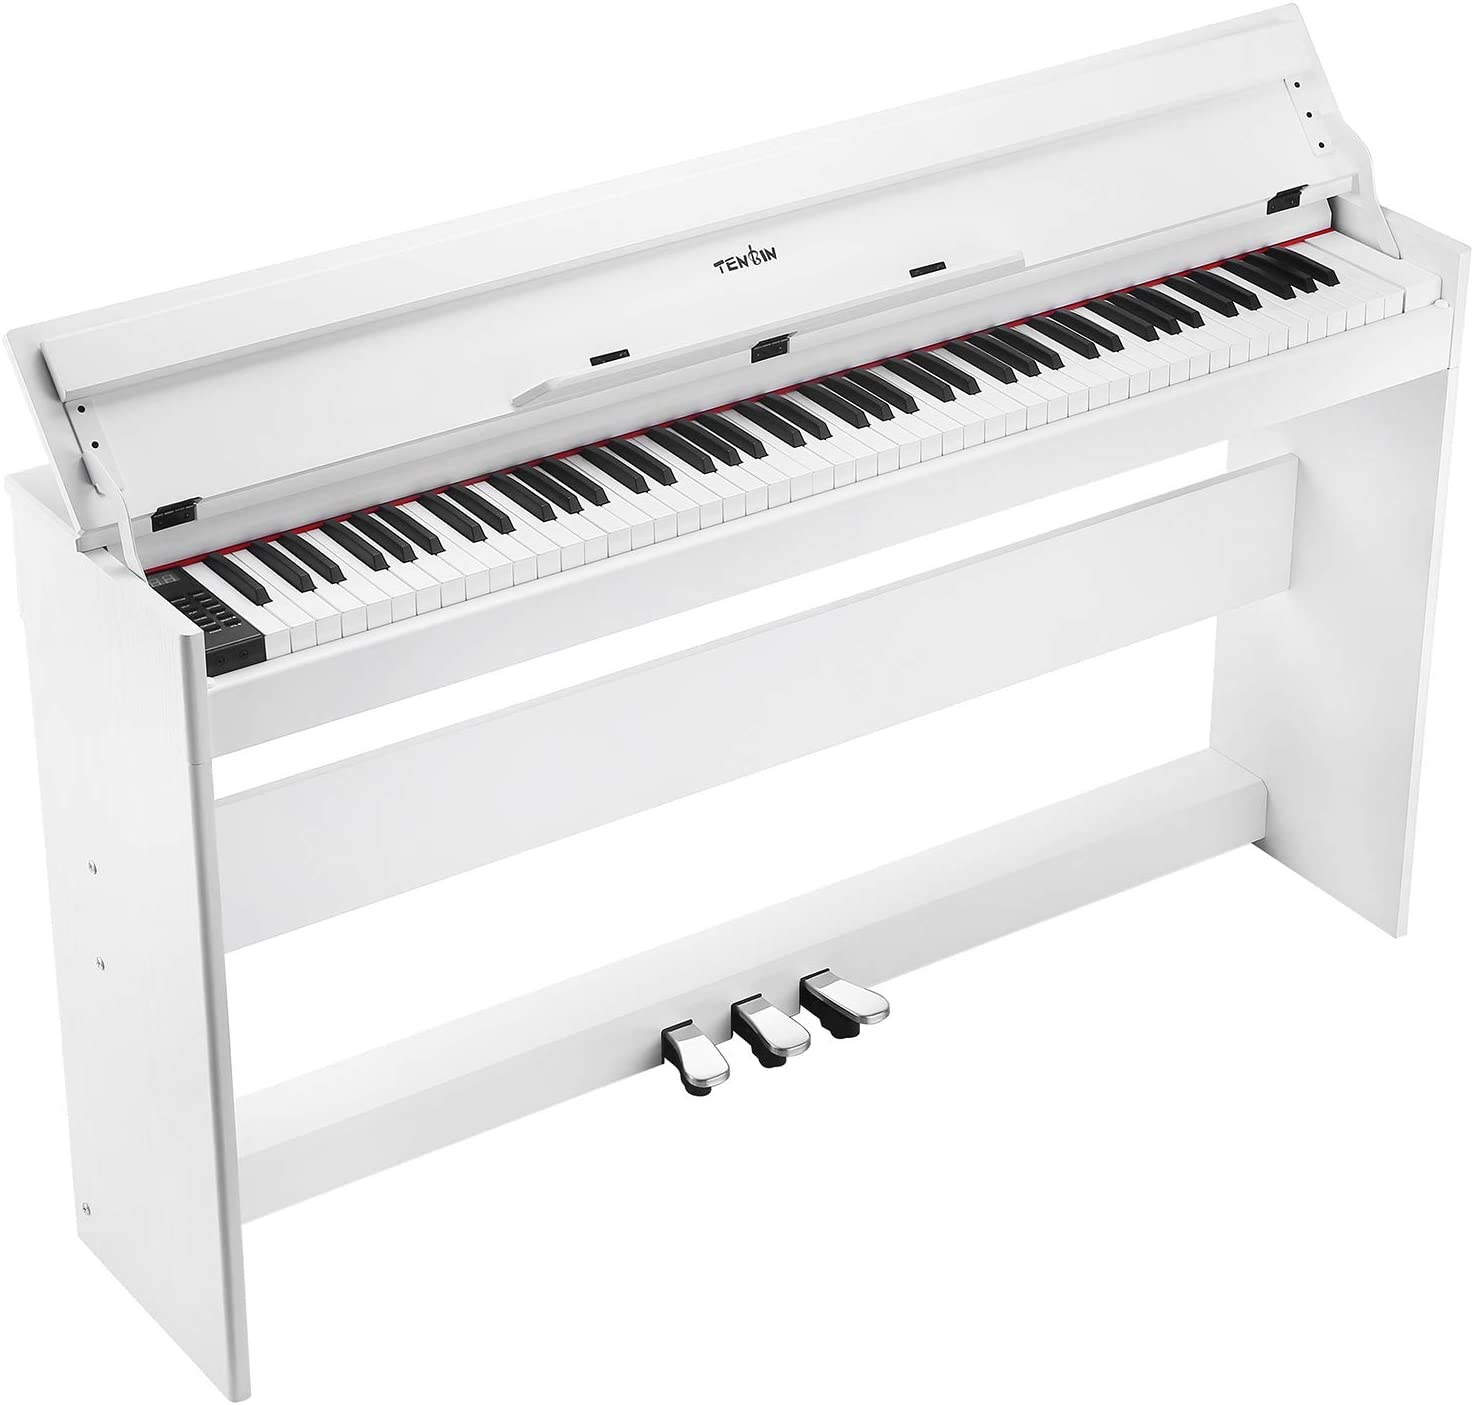 TENB Beginner Digital Piano,88 Key Full Size Semi Weighted Keyboard,Built in Speakers and Power Supply,Home Digital Piano USB/MIDI/Pedal/Audio/Headphone,Suit for Kids,Adults,Beginner